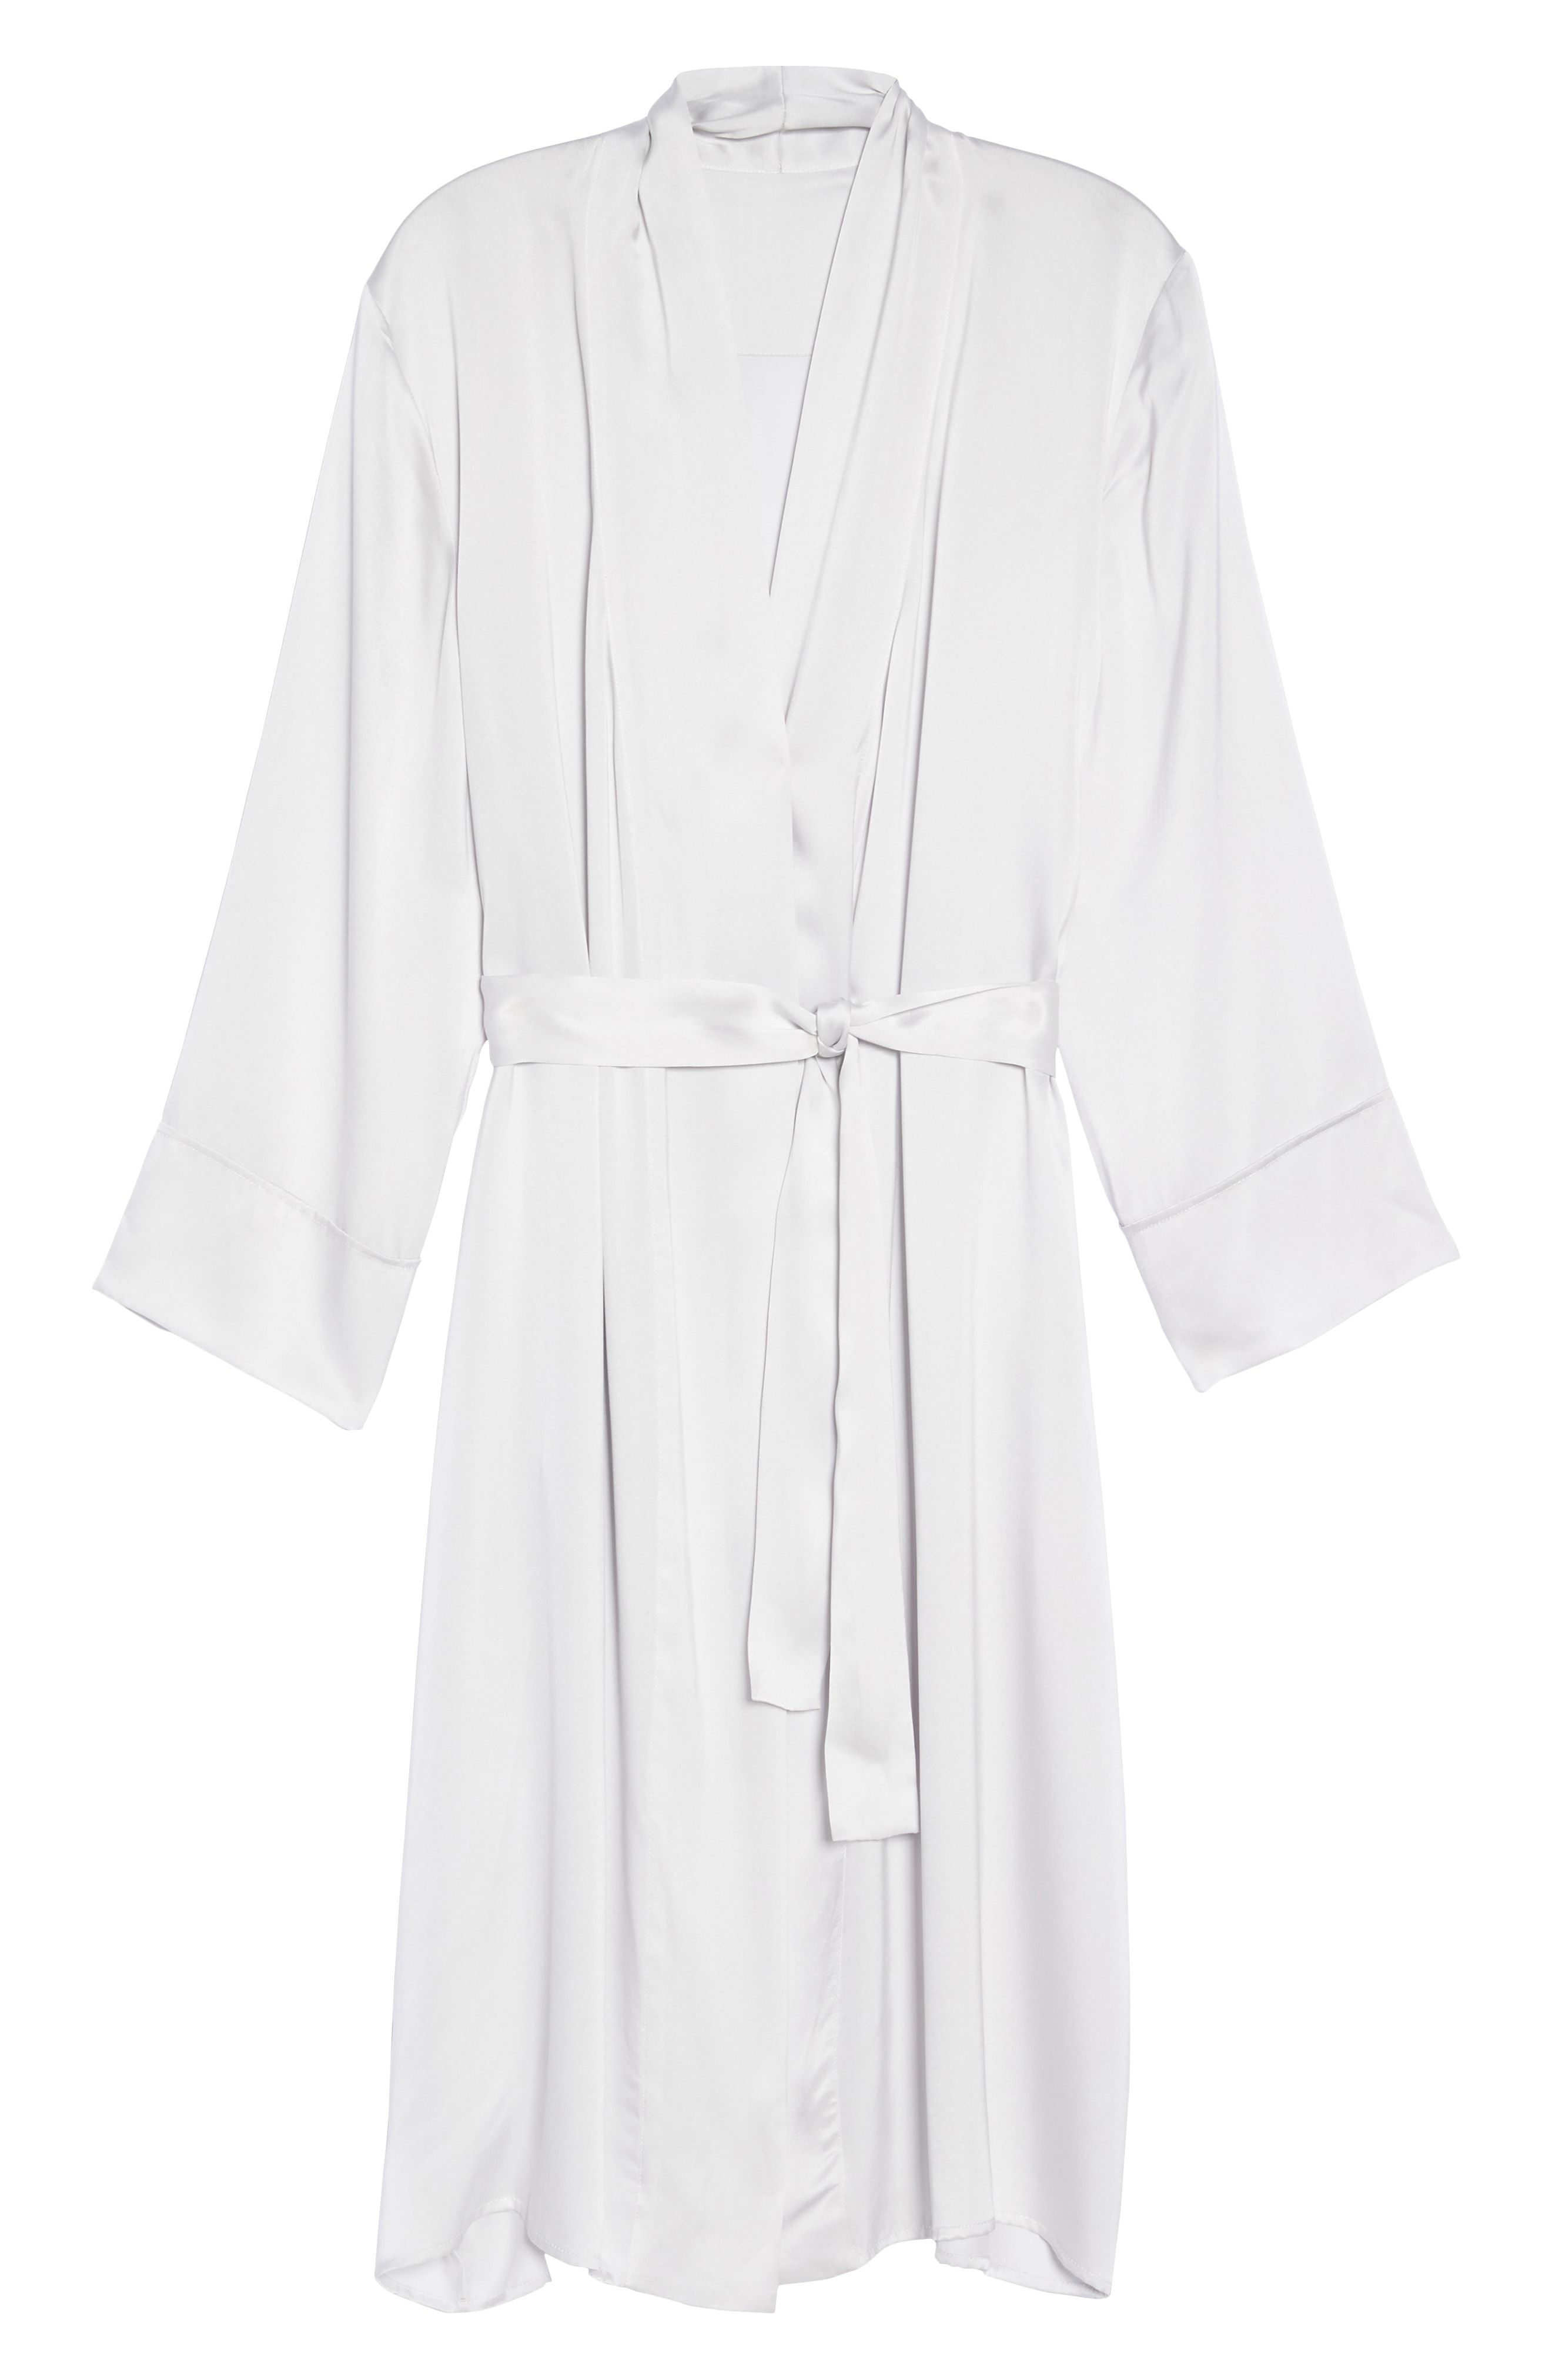 Best Satin And Silk Robes For 2021 Lightweight Robes For Women